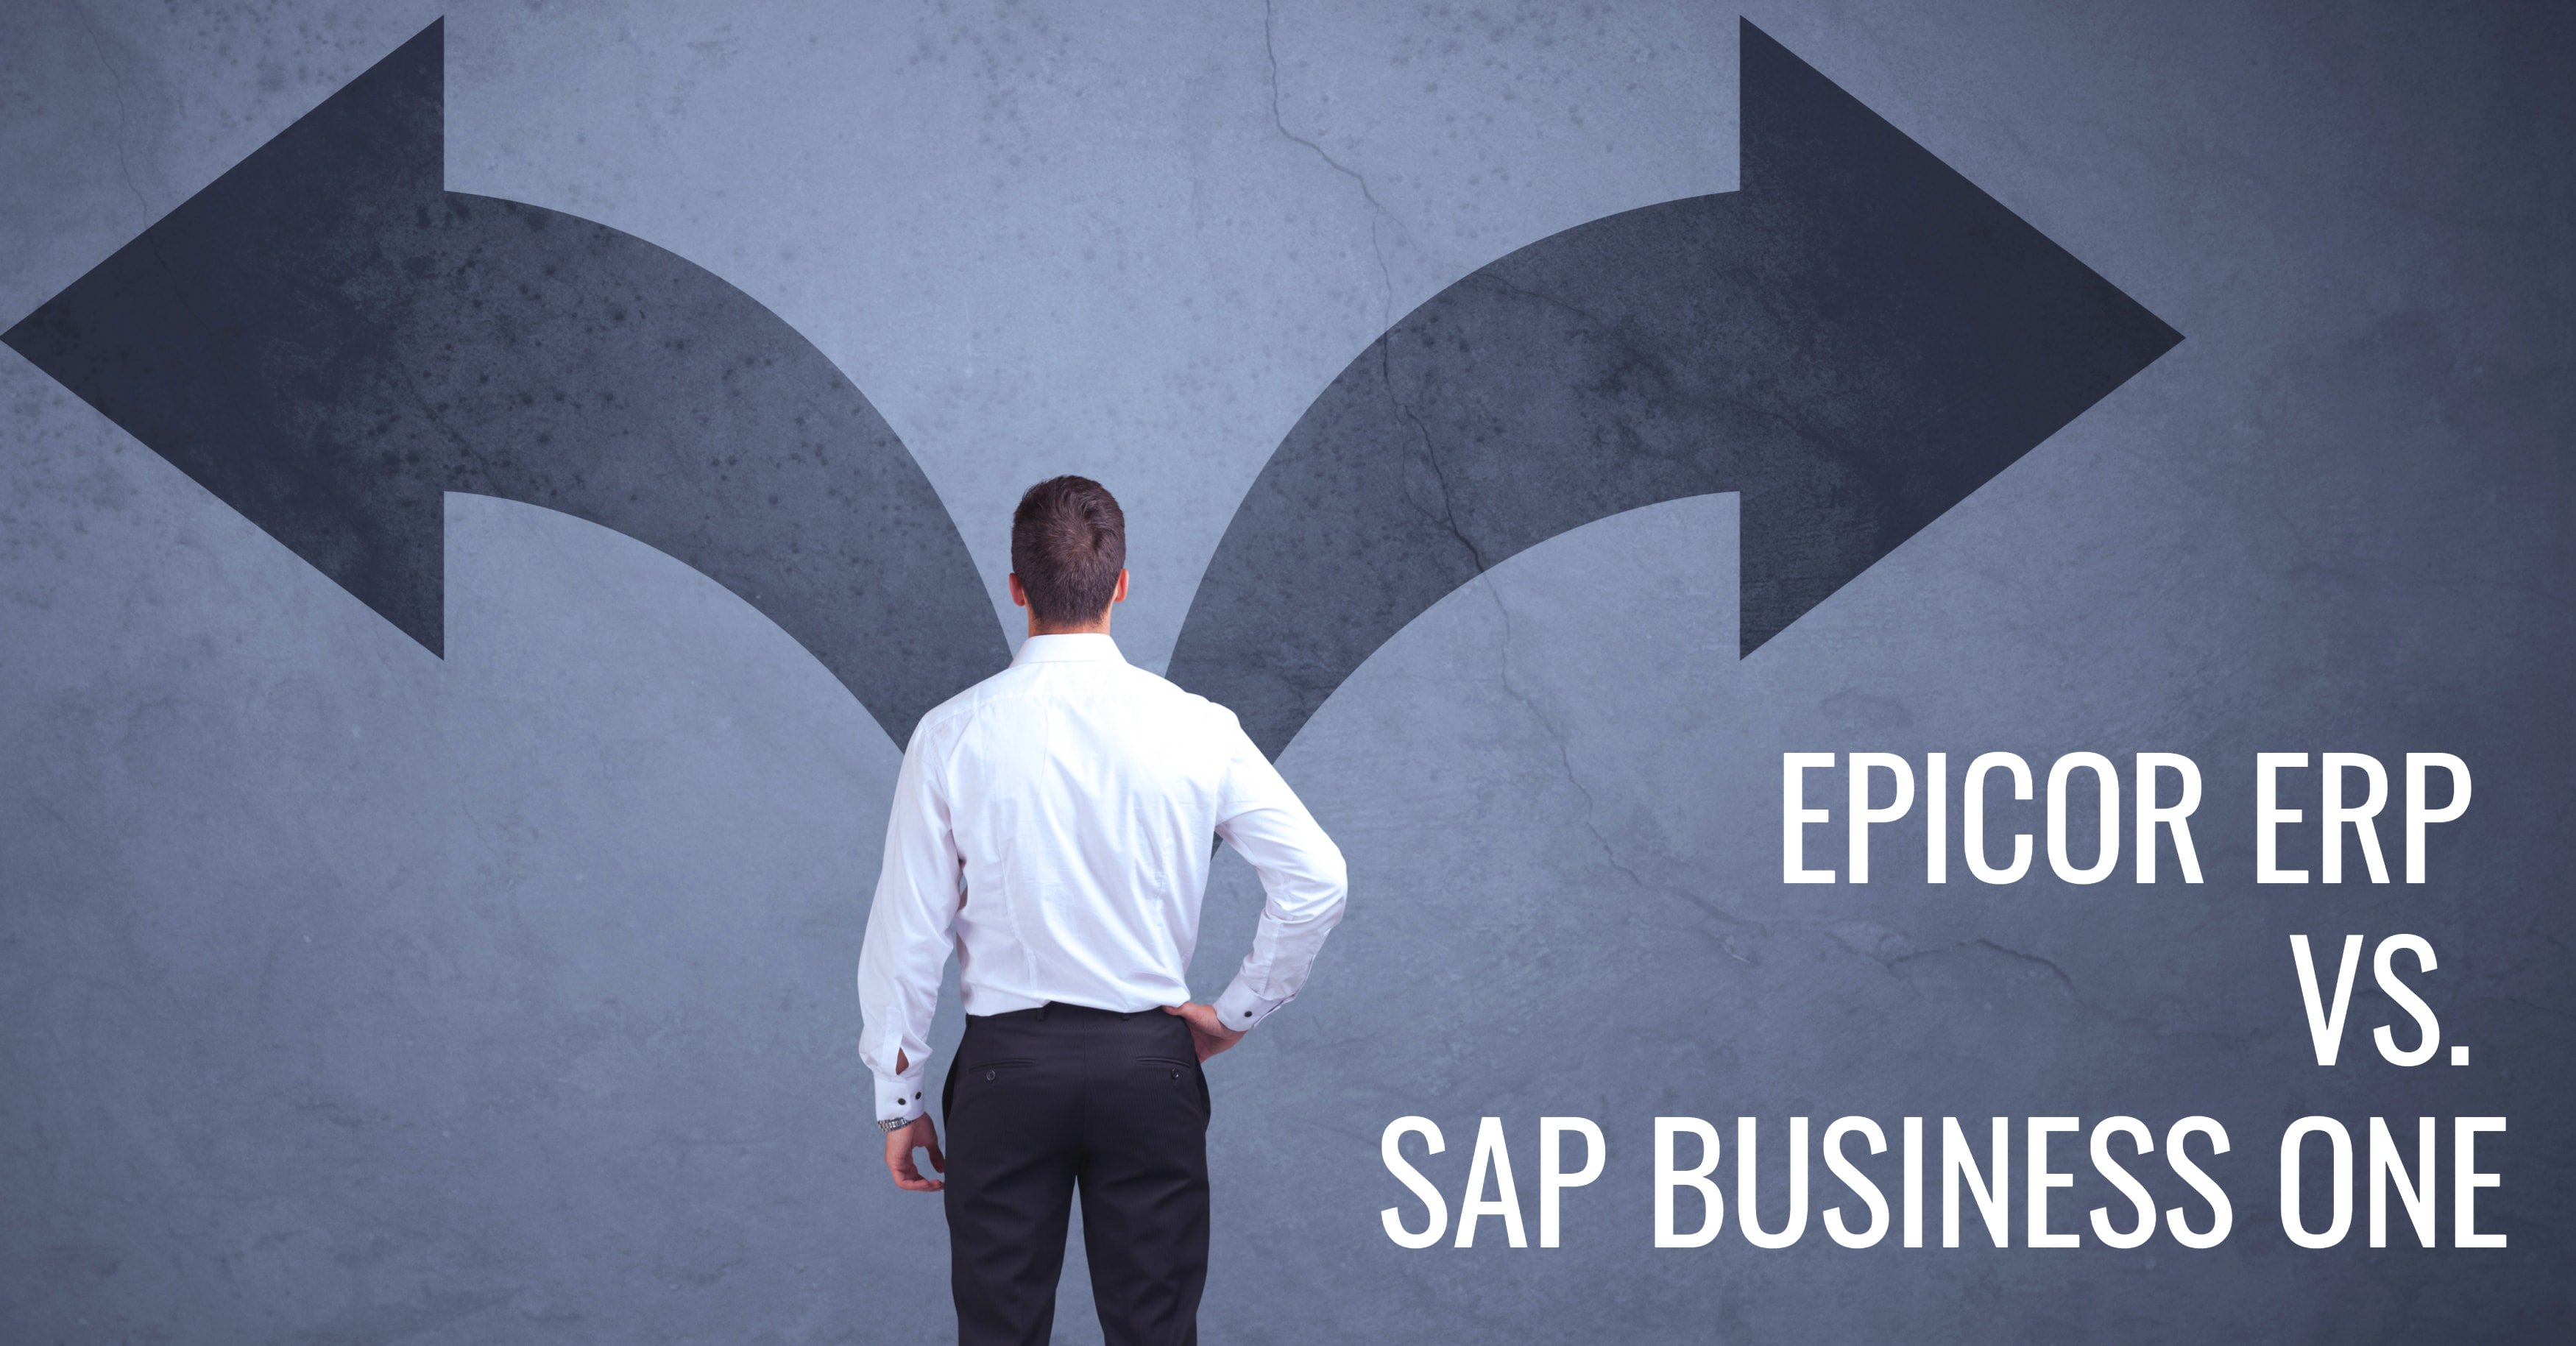 Epicor ERP vs. SAP Business One